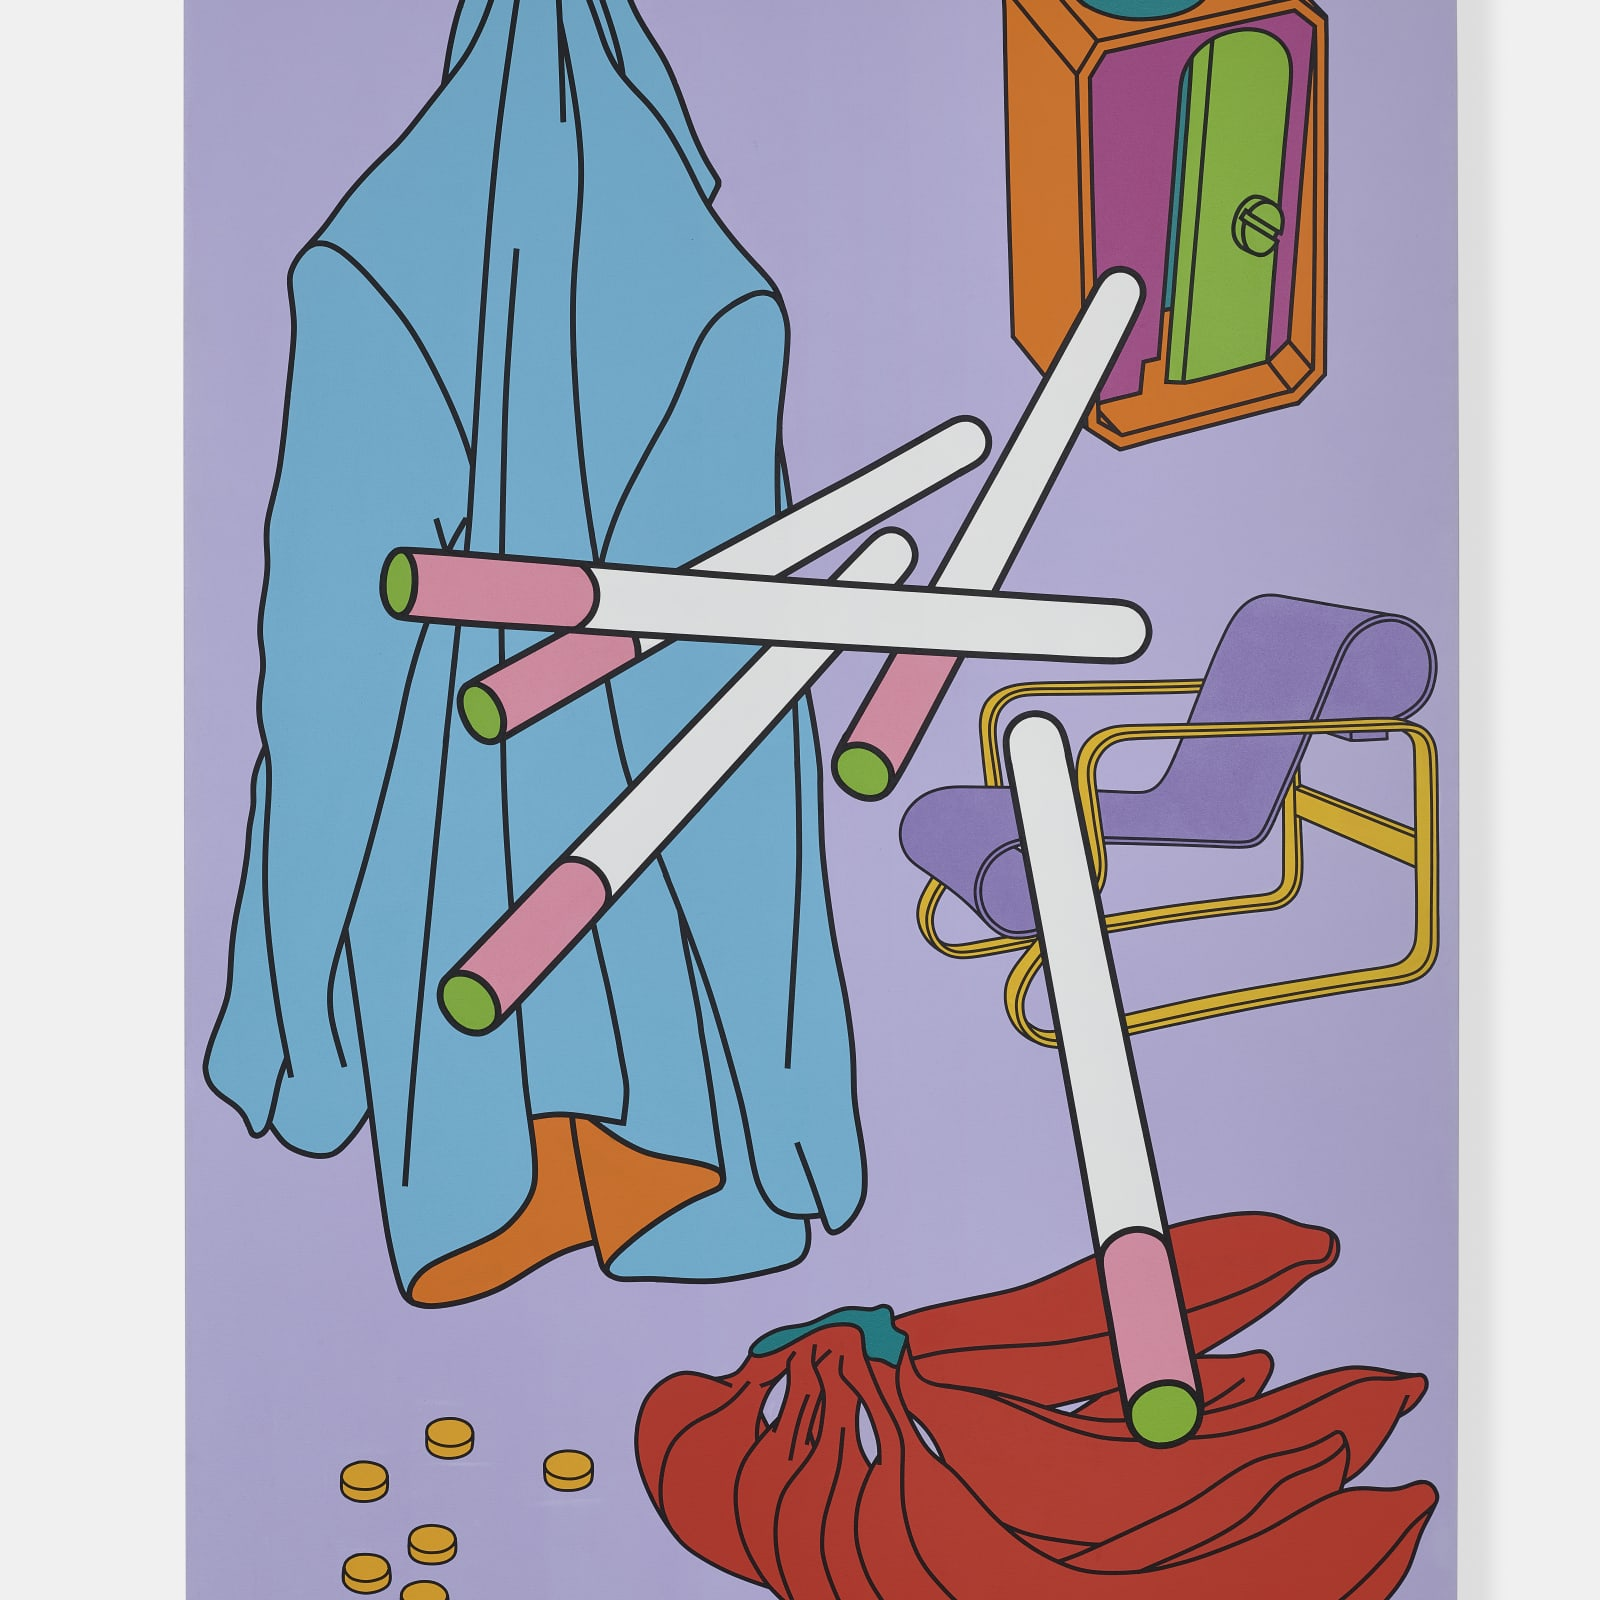 Michael Craig-Martin  b.1941  Untitled, 2000  acrylic on canvas  84 x 56 inches / 213.4 x 142.2 cm